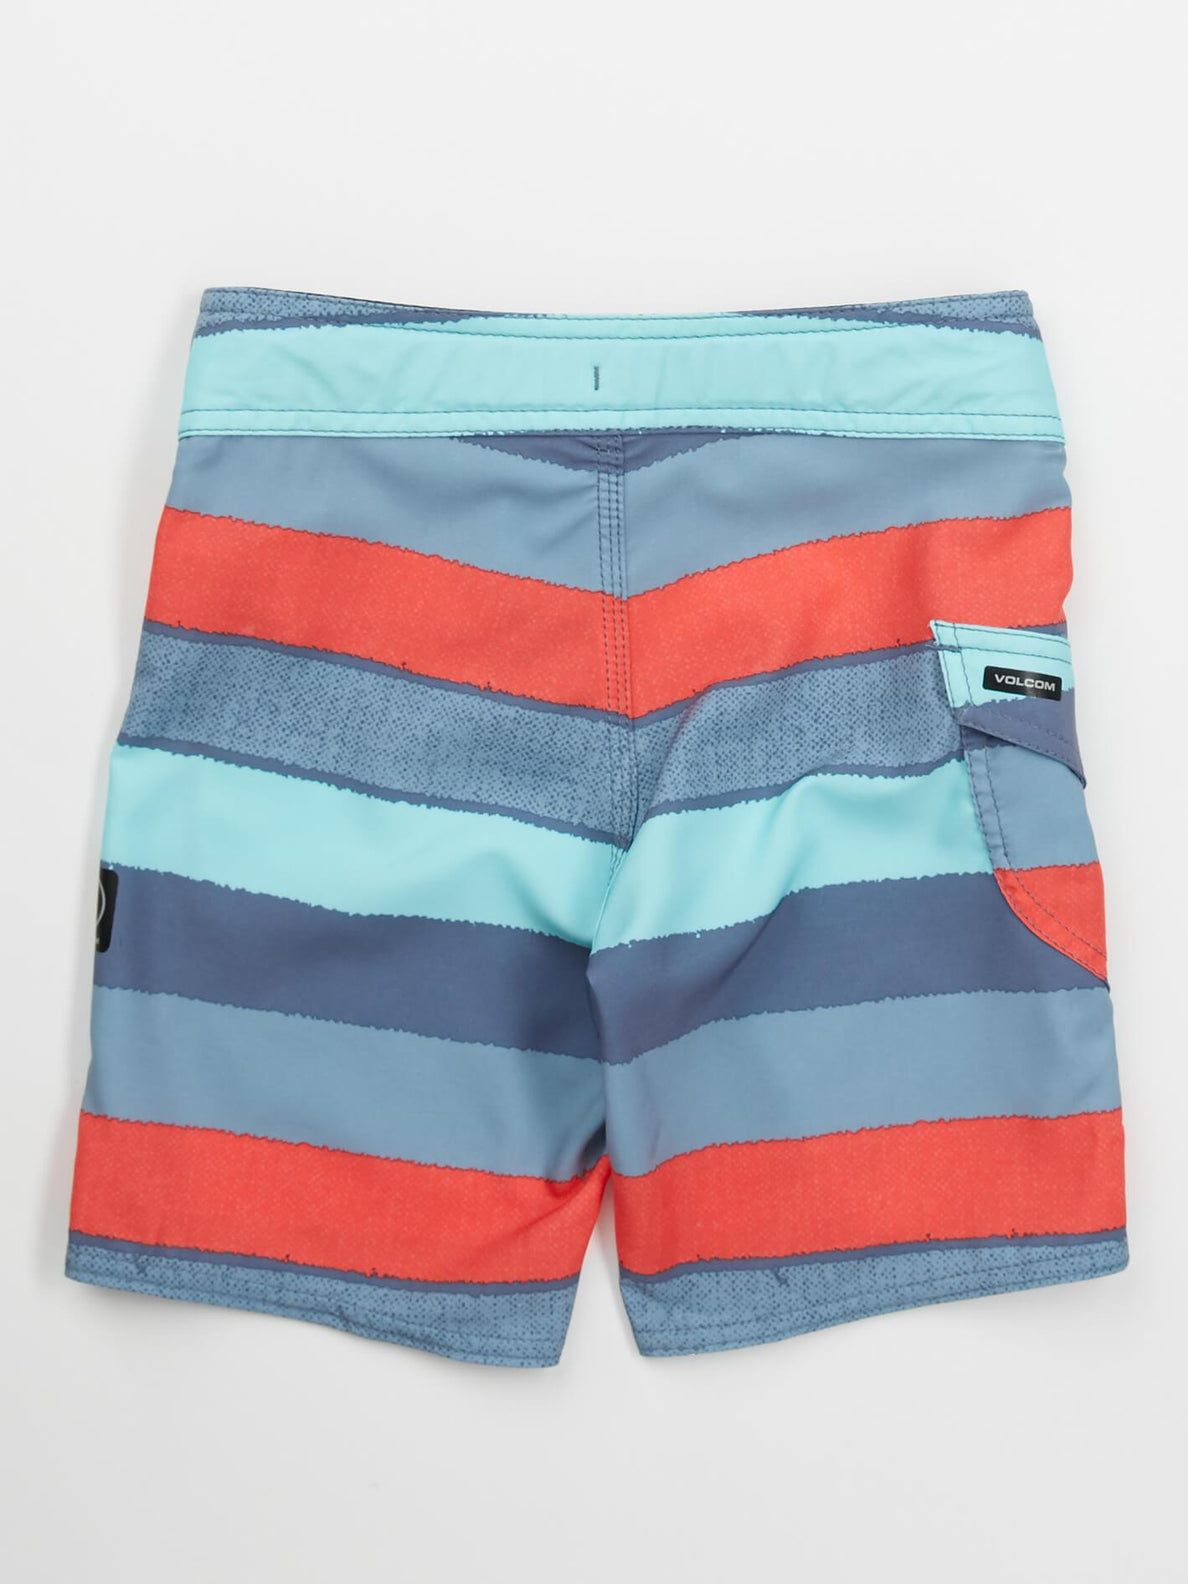 Little Boys Magnetic Liney Mod Boardshorts In Wrecked Indigo, Back View